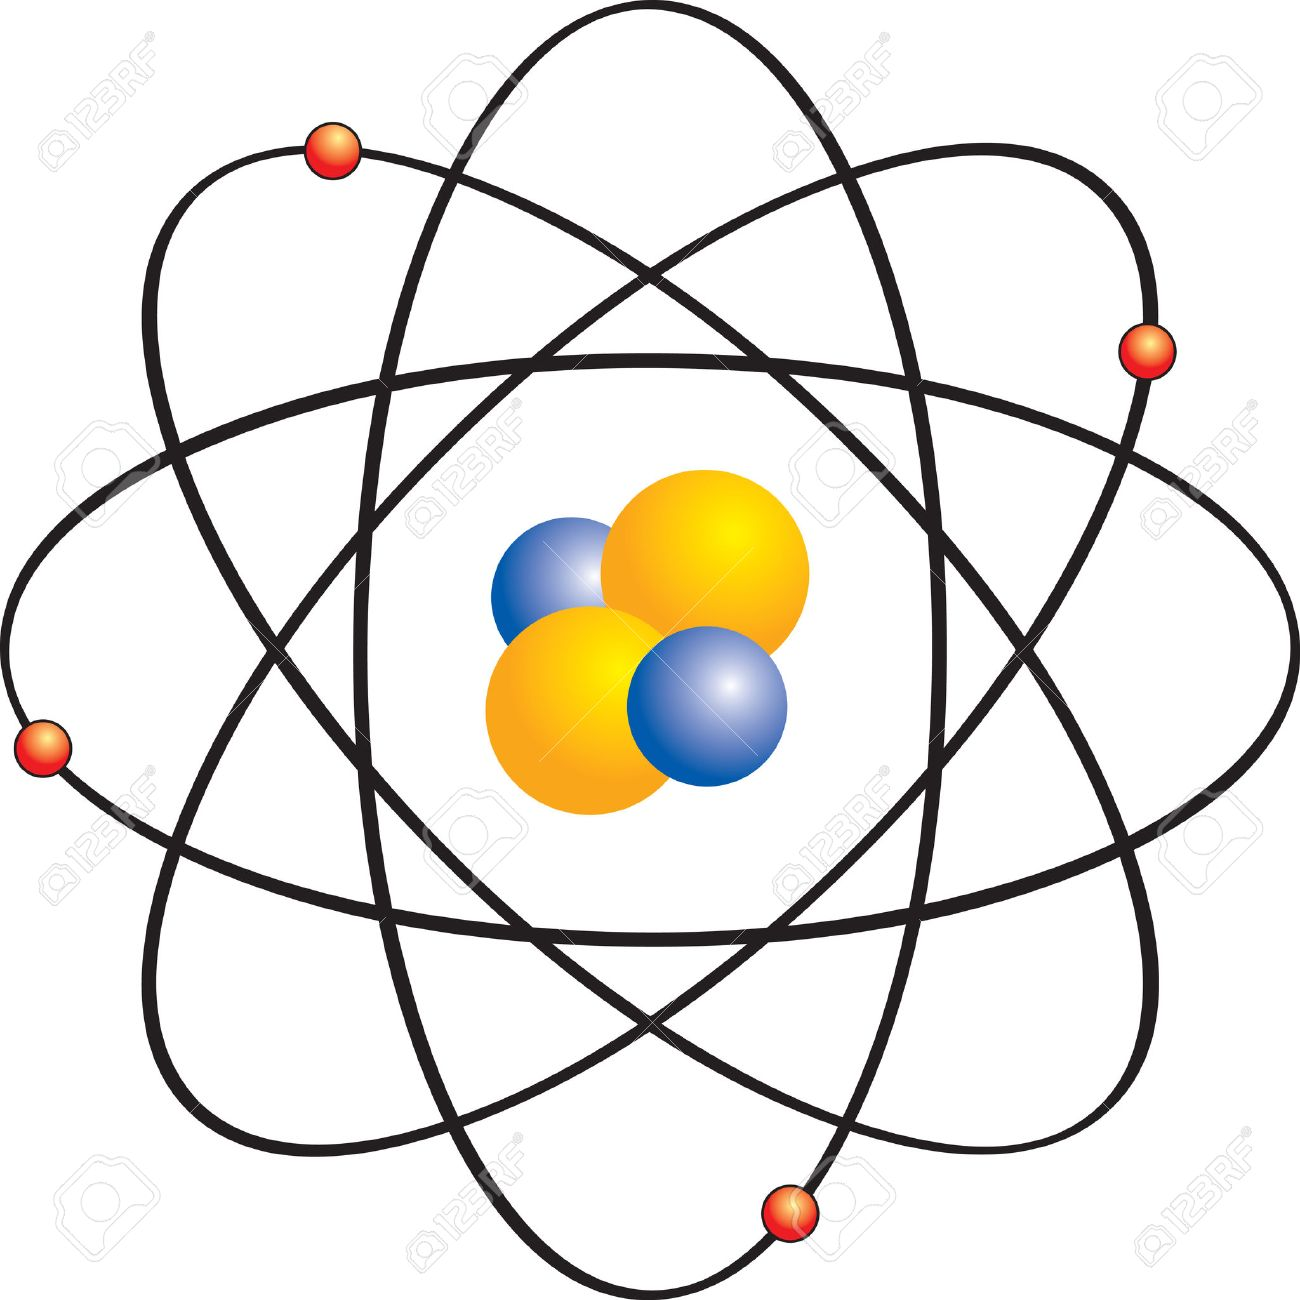 1300x1300 Atom With Electron Orbits Royalty Free Cliparts, Vectors,